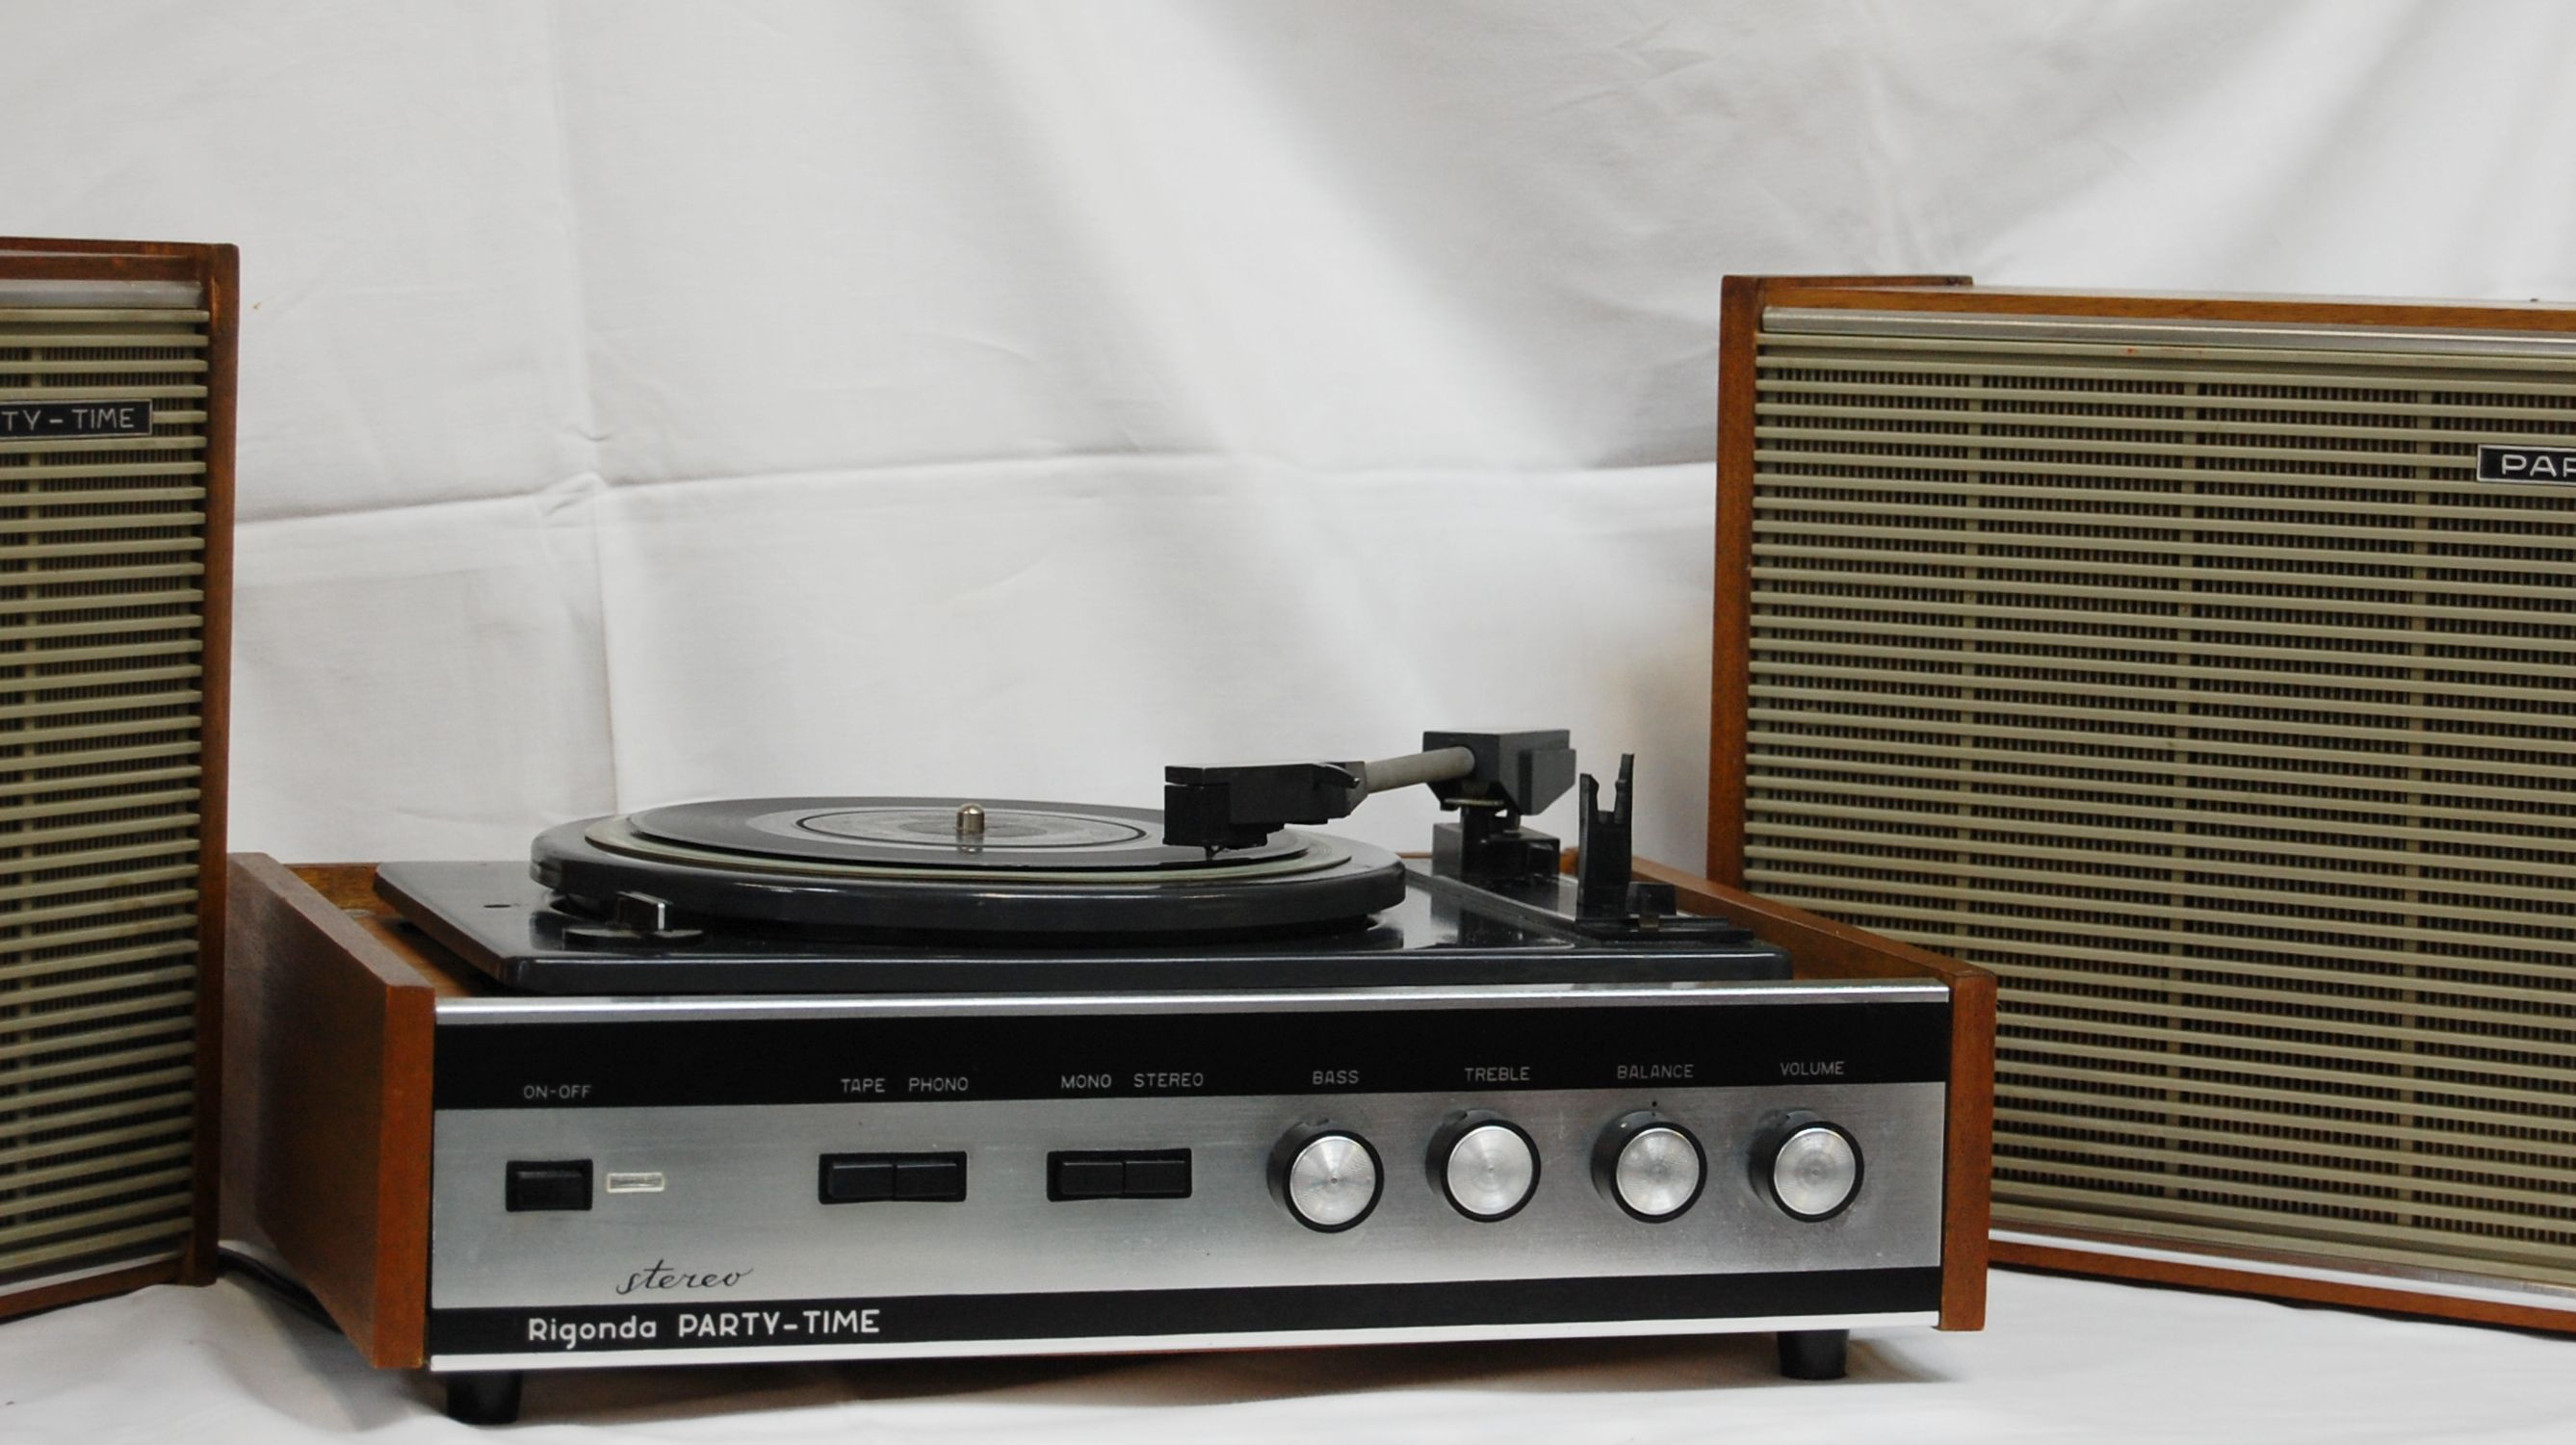 Music time vintage record player